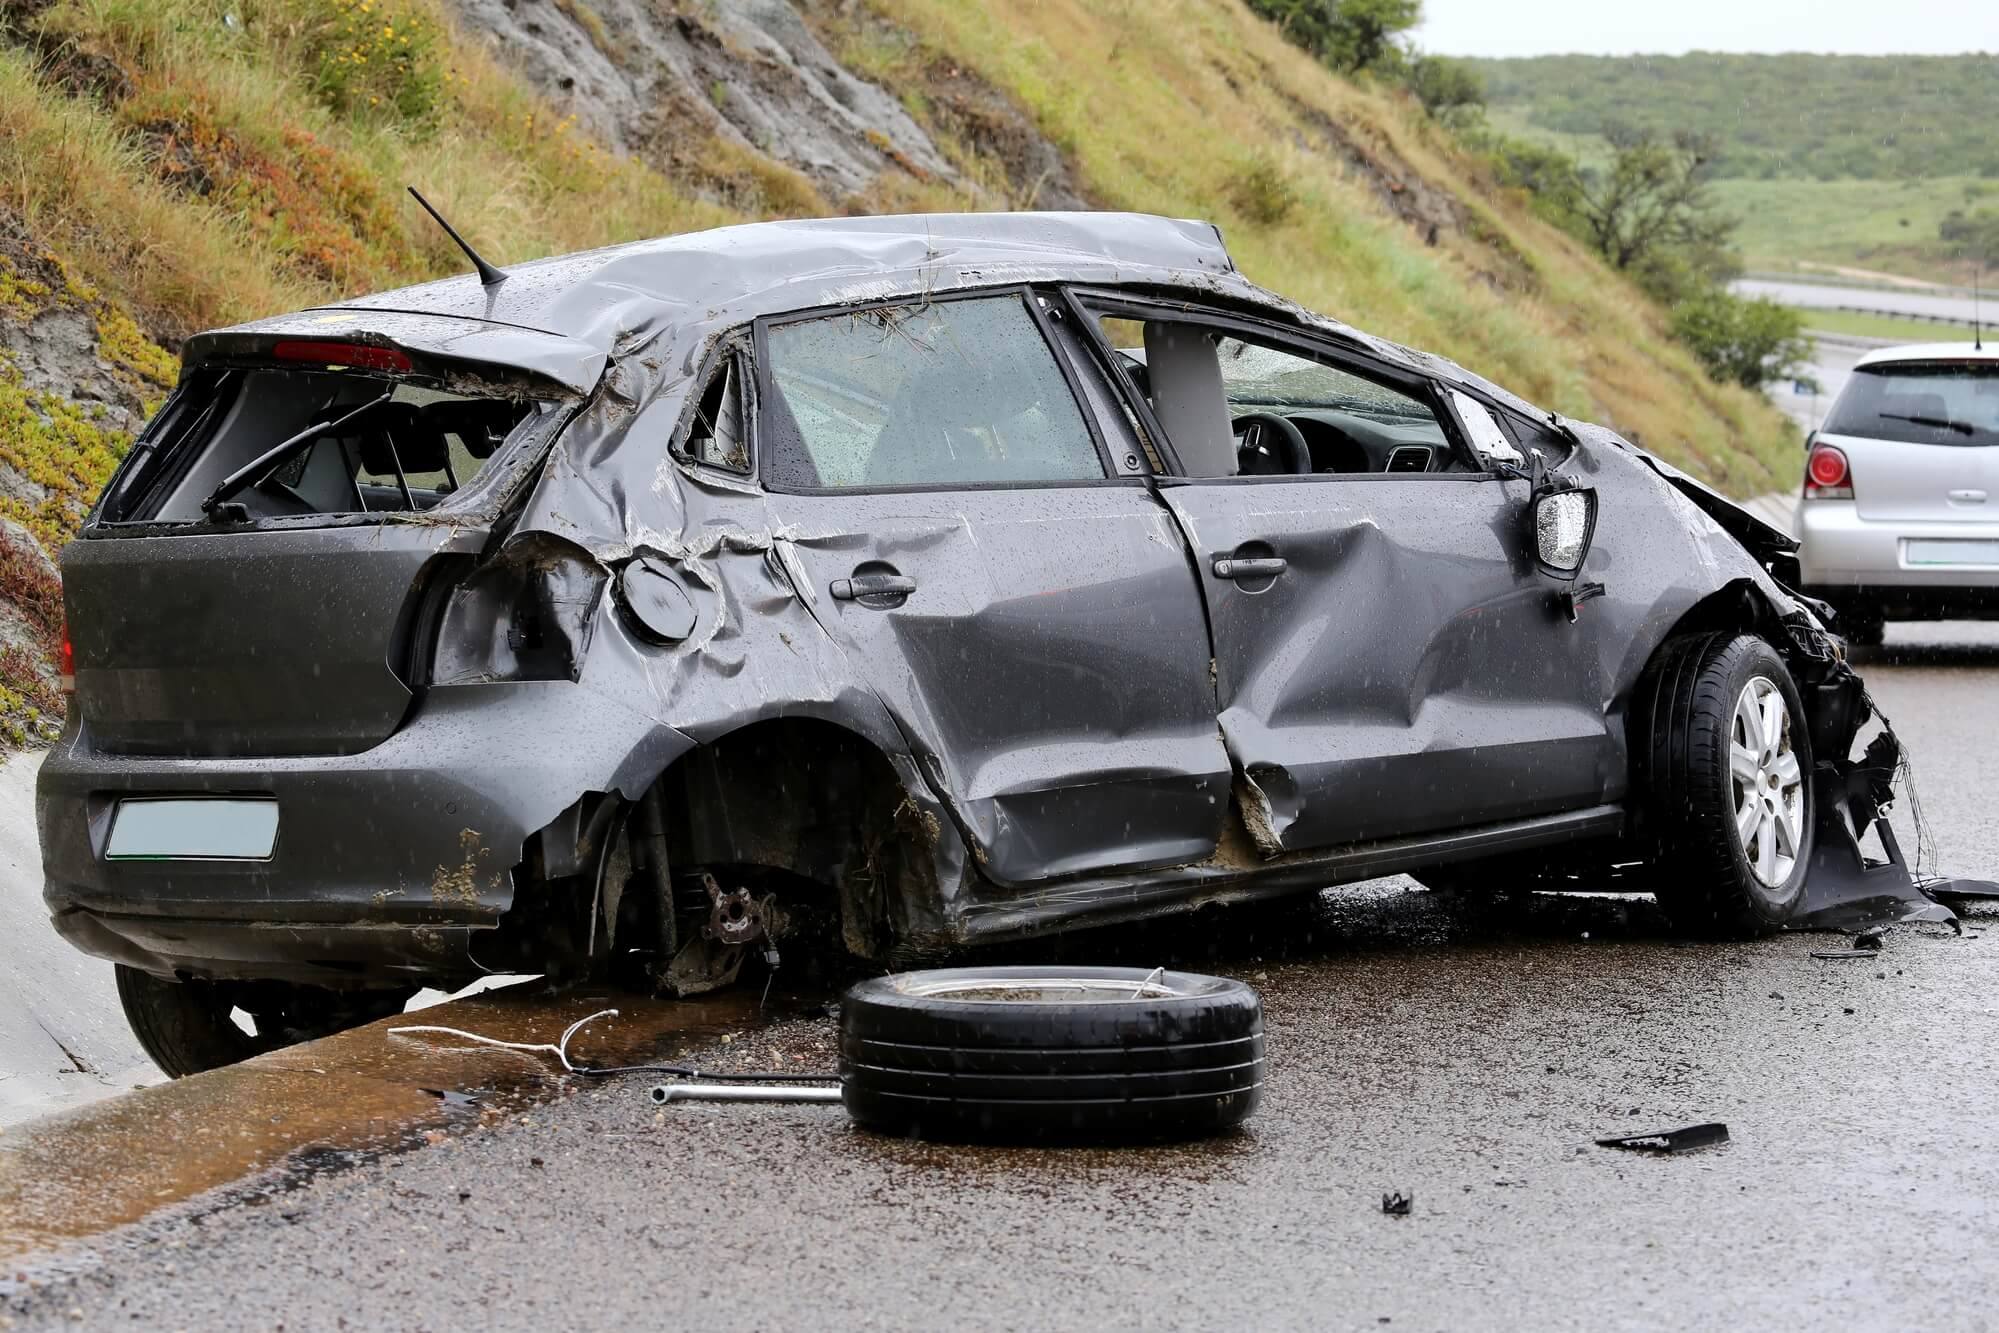 Pittsburg Car Accident Kills Two People